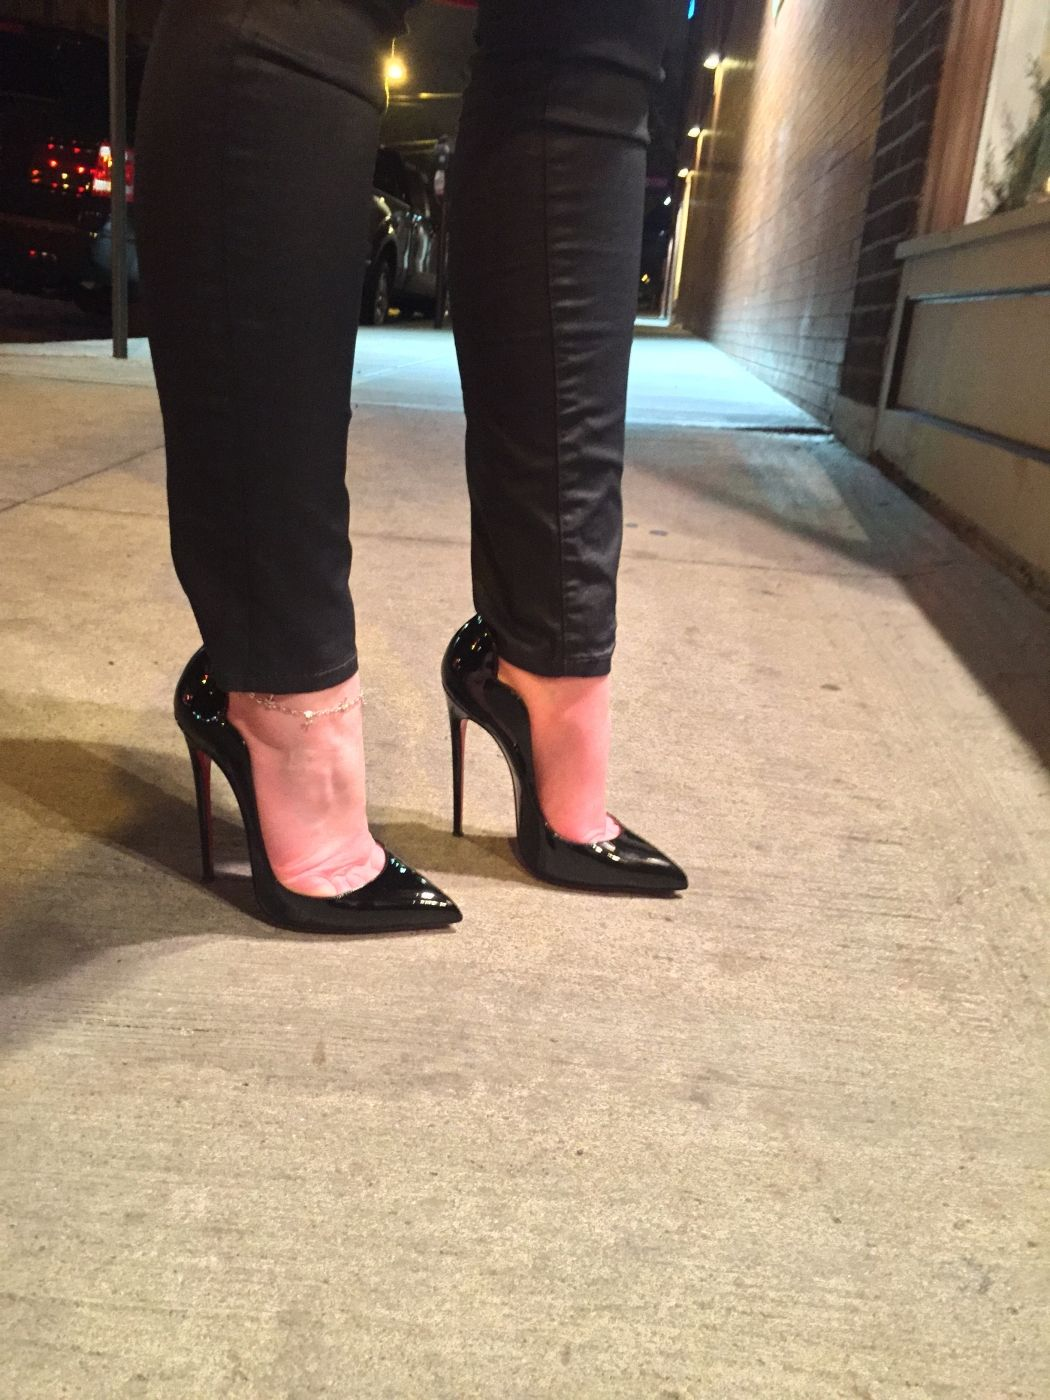 Christian Louboutin Hot Chick (130mm) by EngineeringInHeels  074217d81f8a